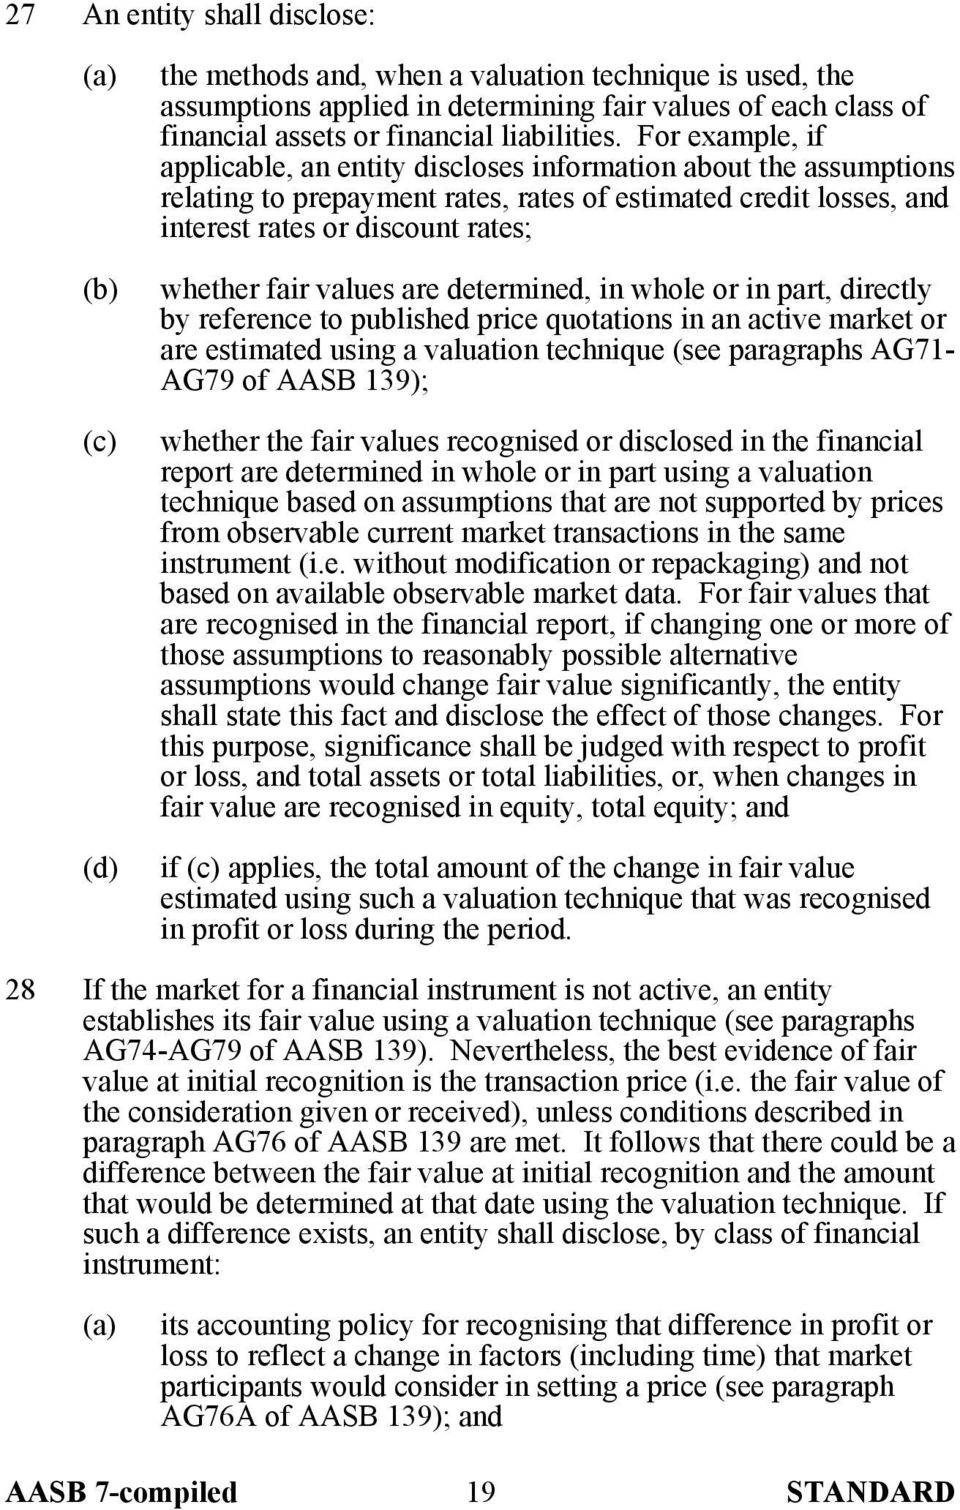 values are determined, in whole or in part, directly by reference to published price quotations in an active market or are estimated using a valuation technique (see paragraphs AG71- AG79 of AASB